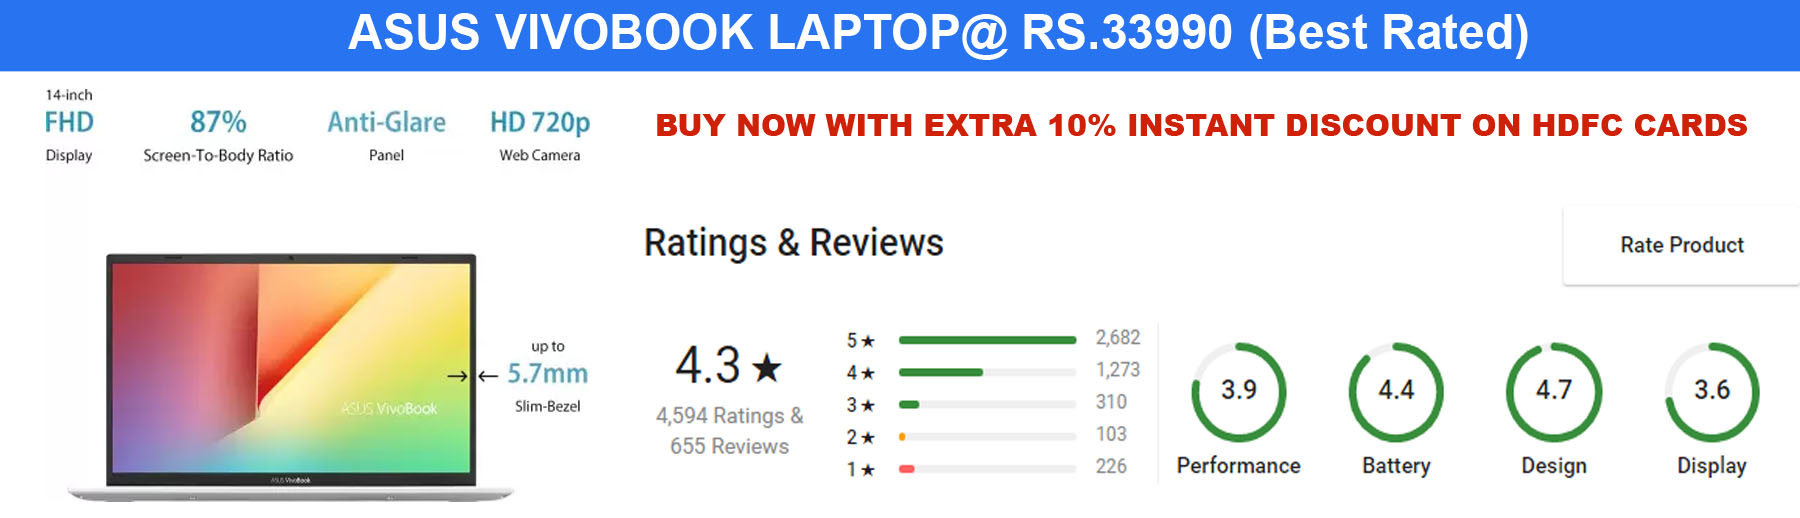 Best Best Rated Laptop at Best Price Online